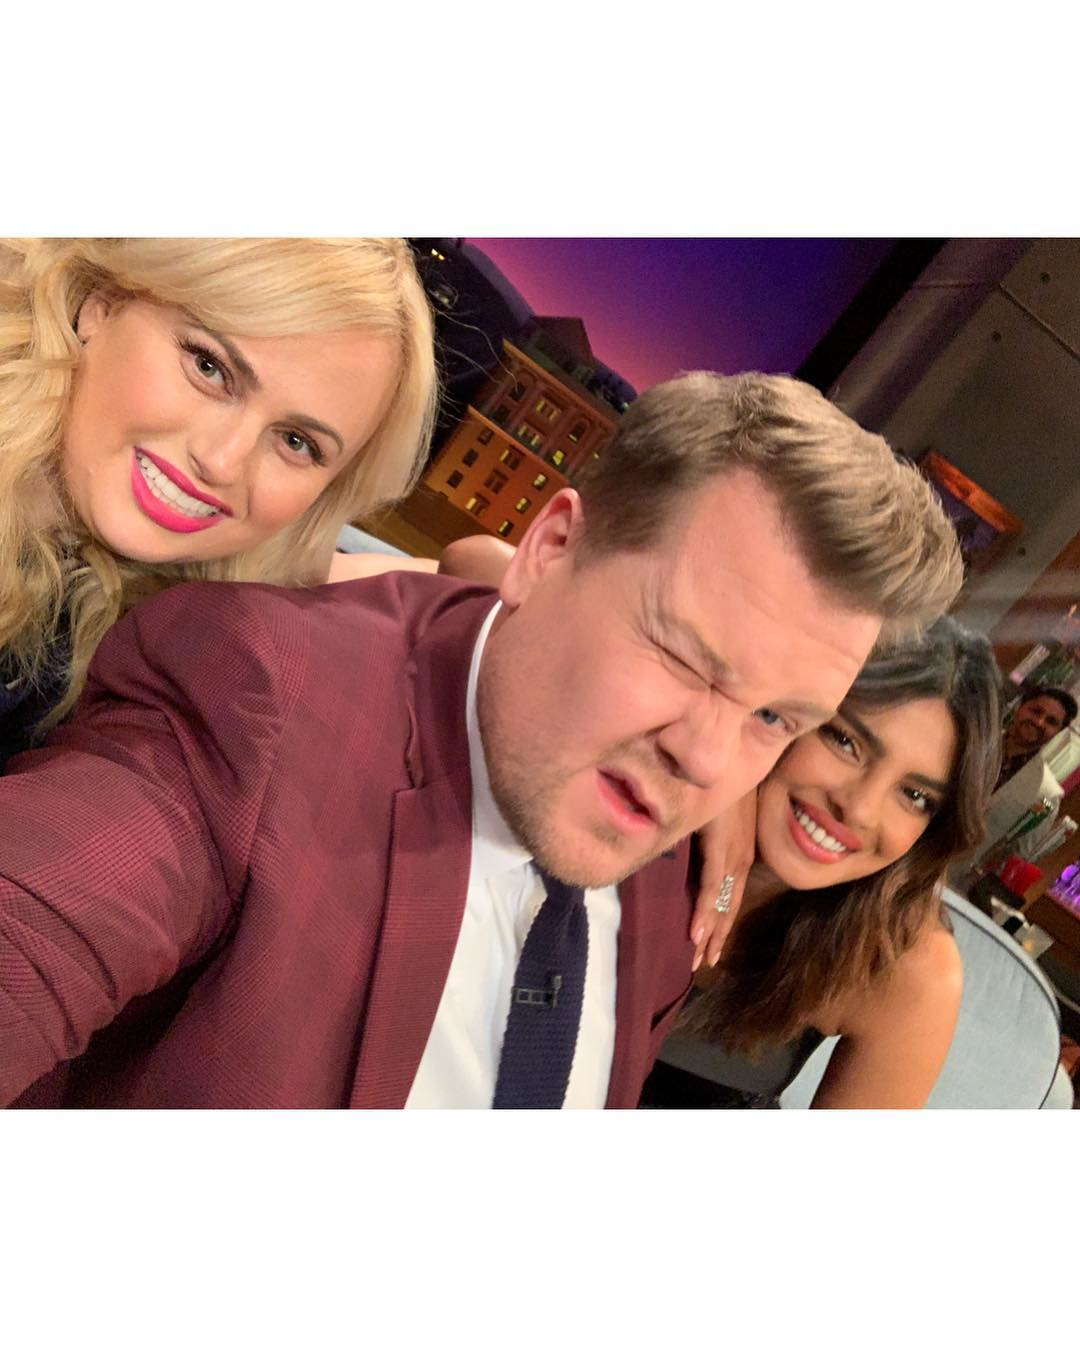 Priyanka Chopra, Rebel Wilson And James Corden Stills From The Late Late Show